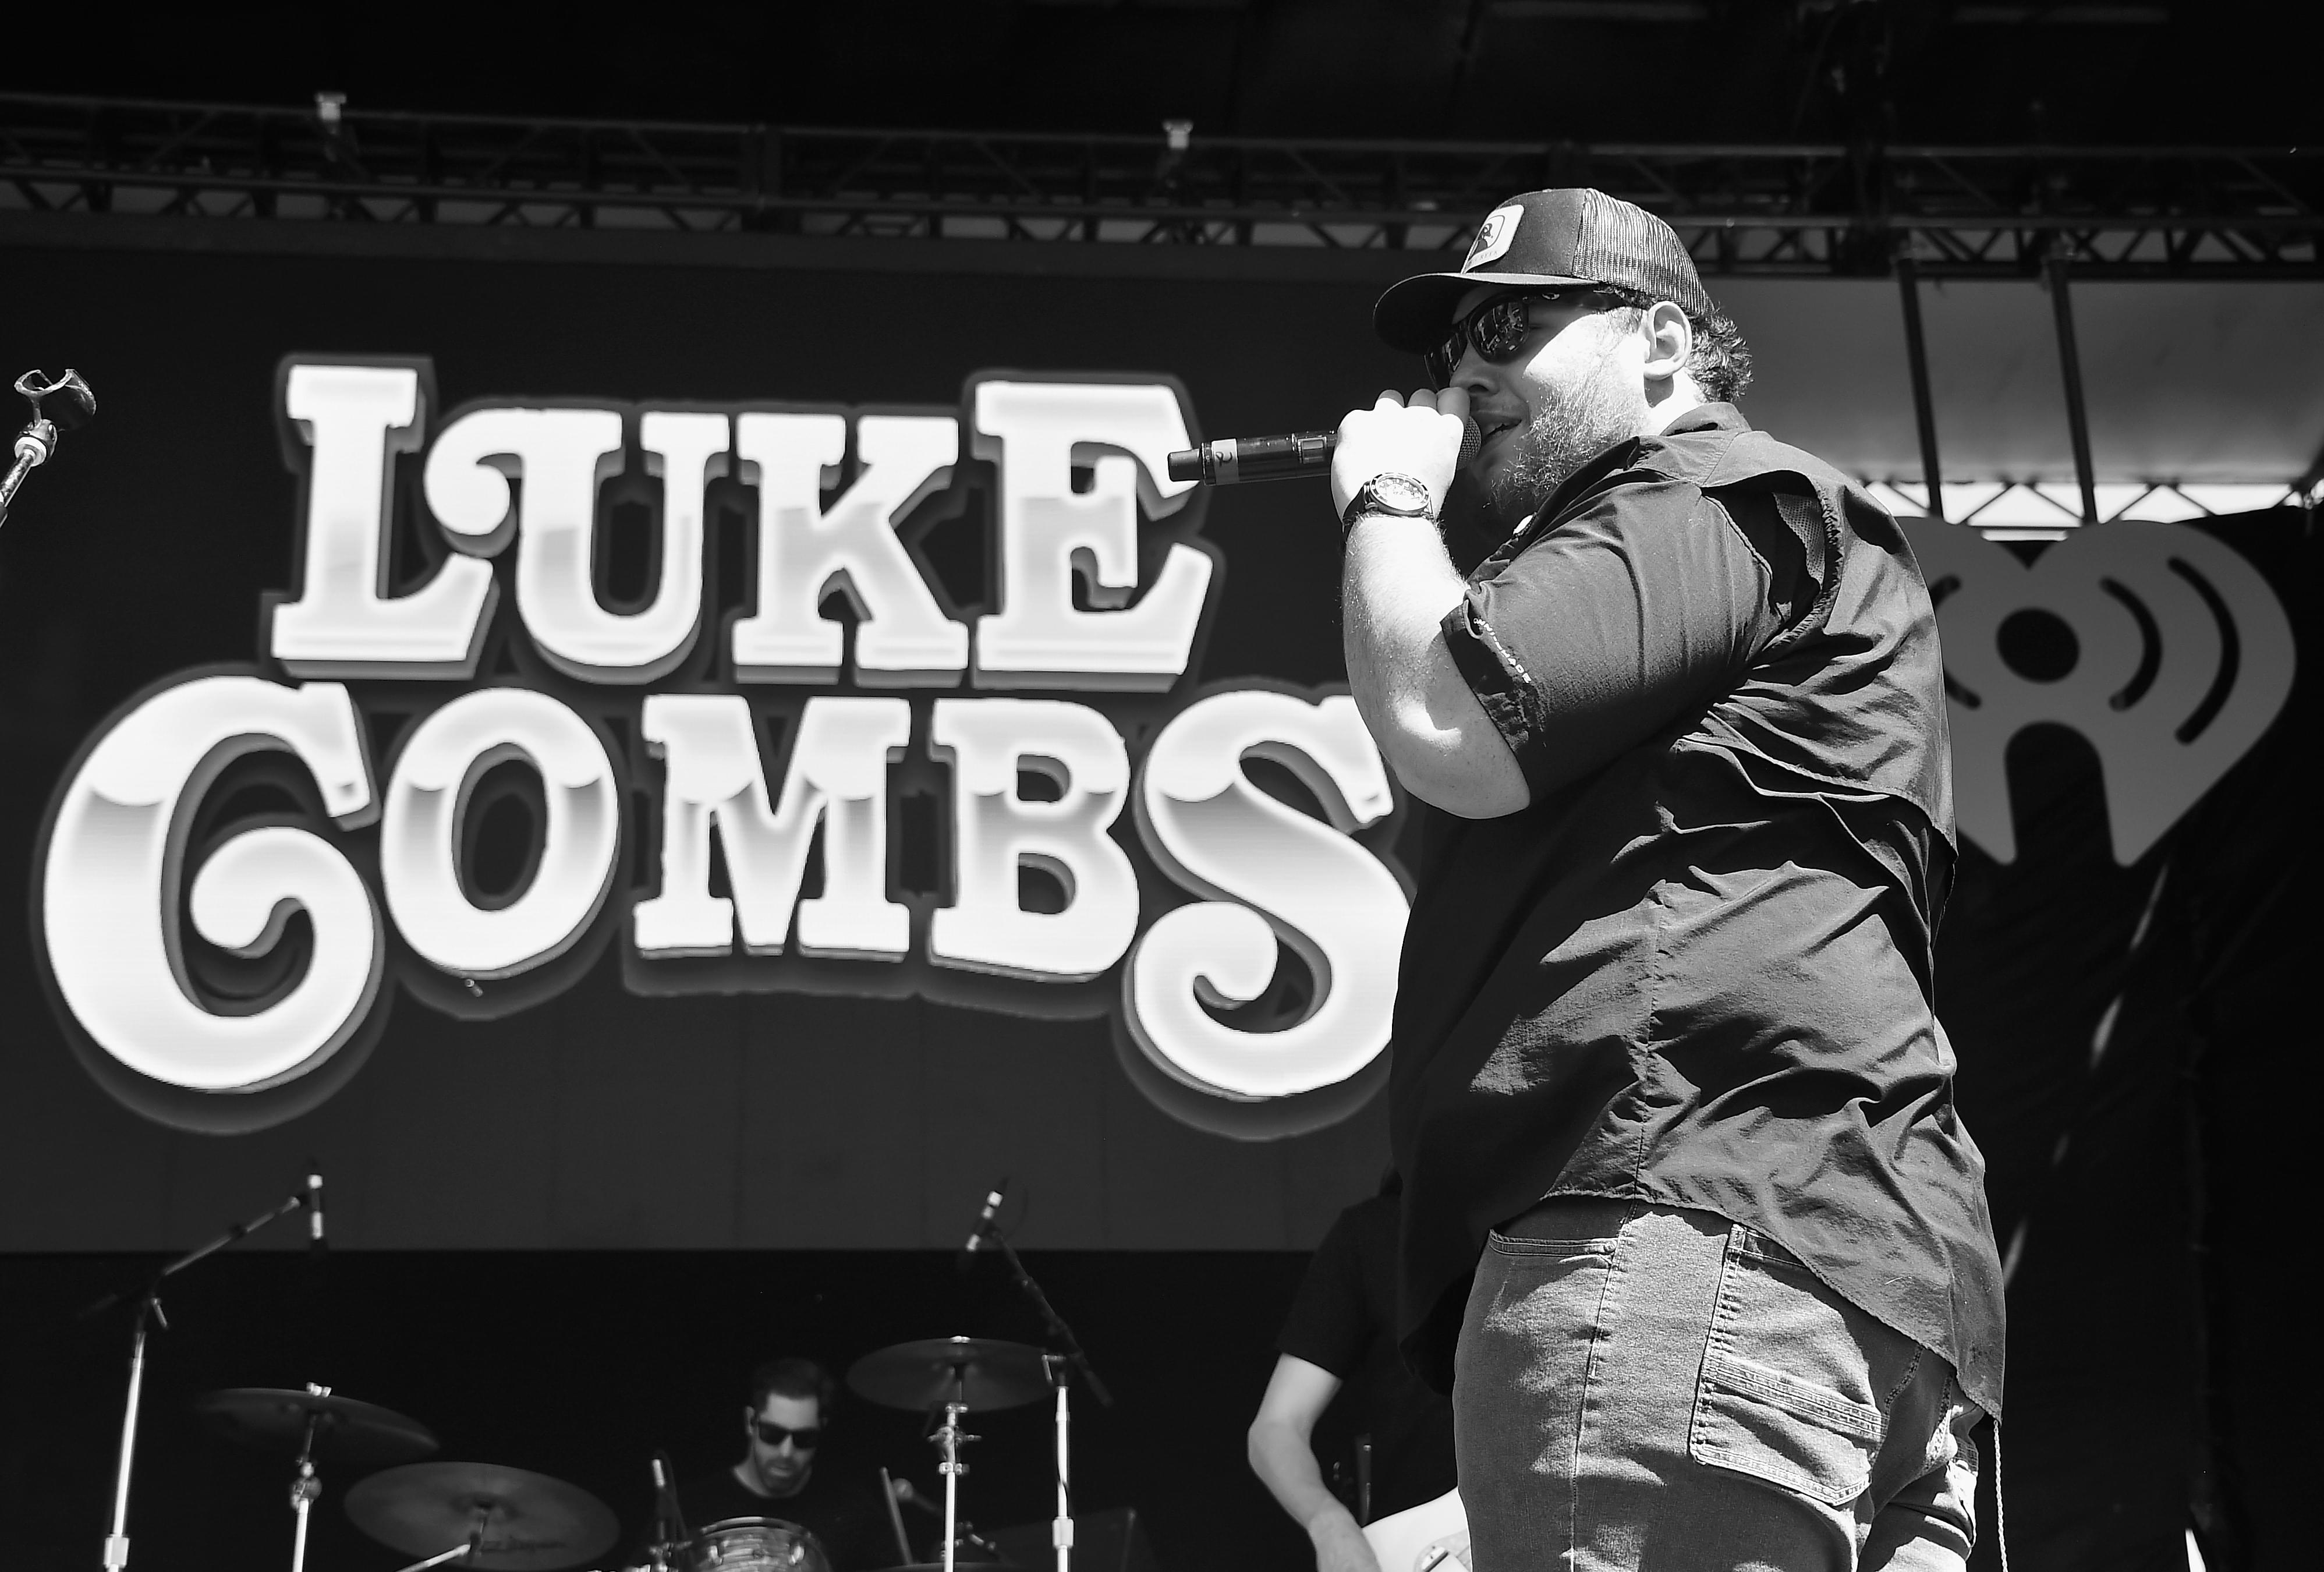 Watch Luke Combs Cover Luke Bryan Way Before He Was Famous [VIDEO]